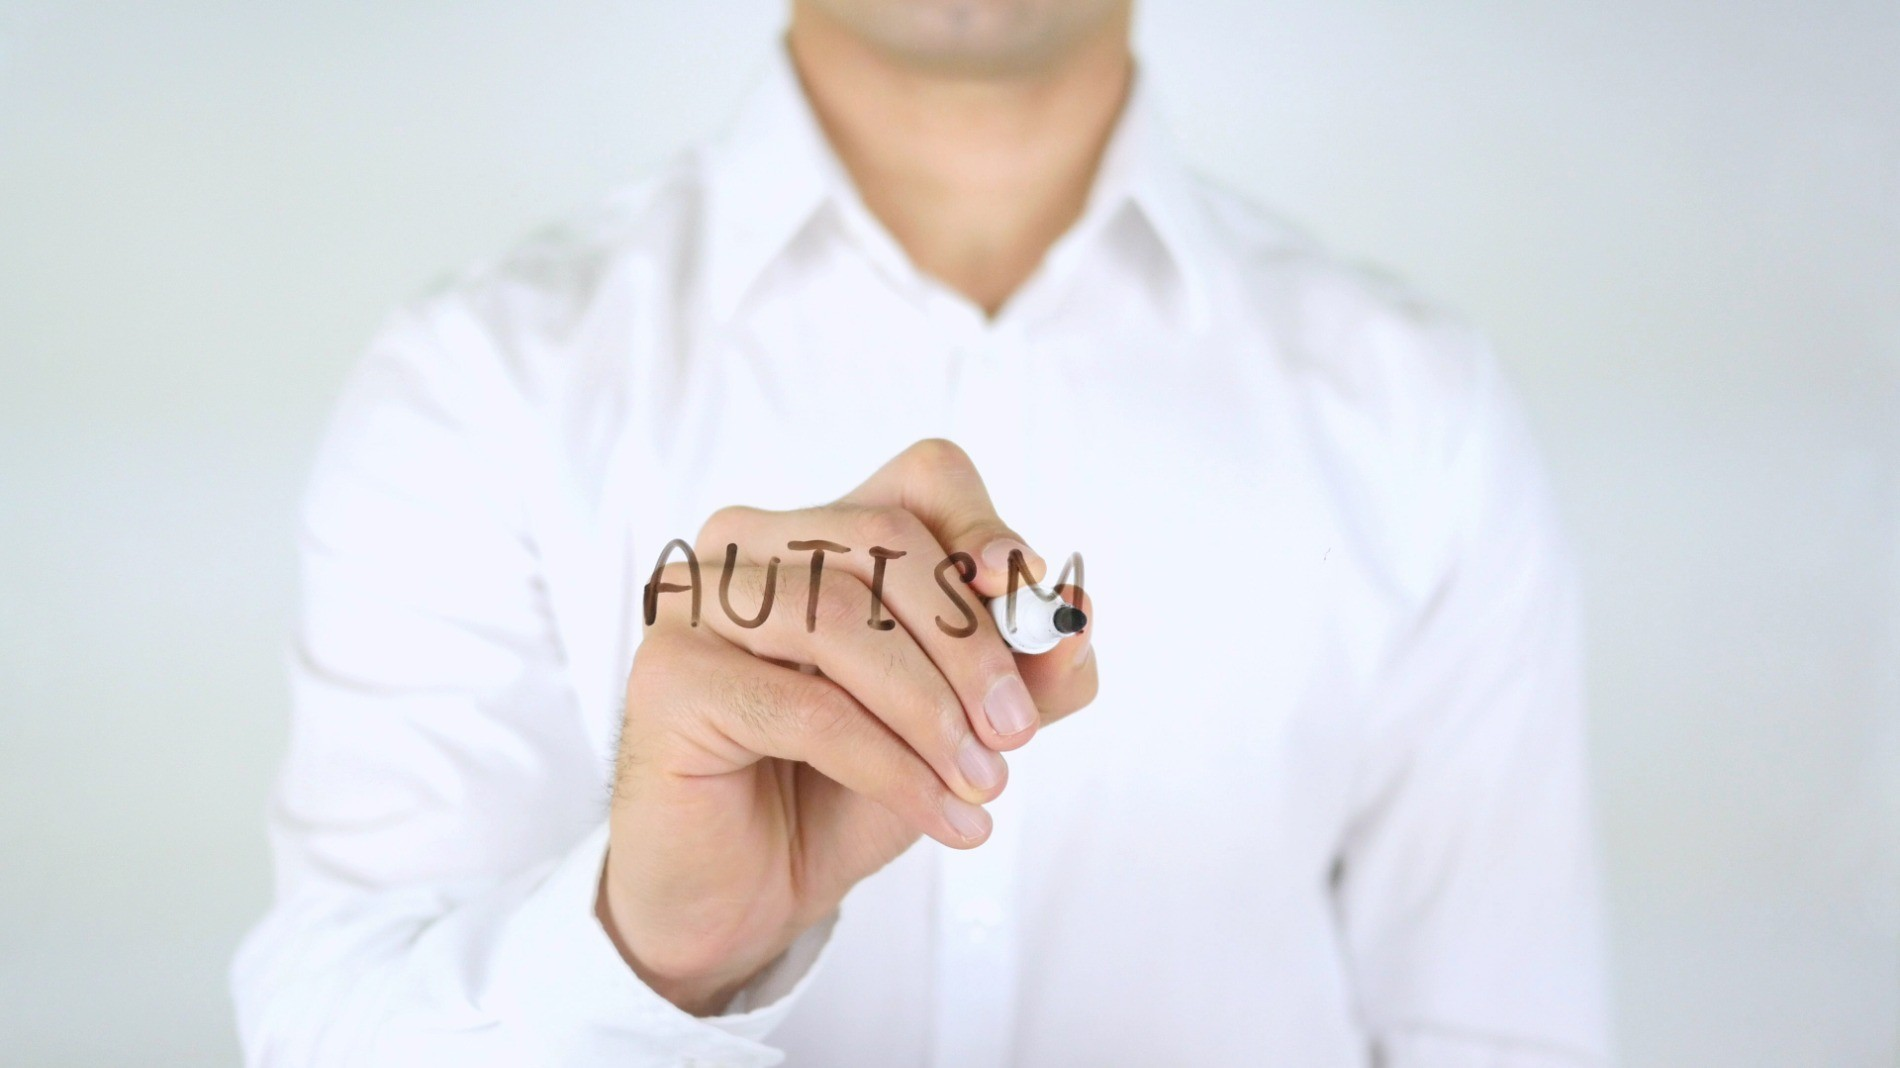 Will an Autism diagnosis make any difference?